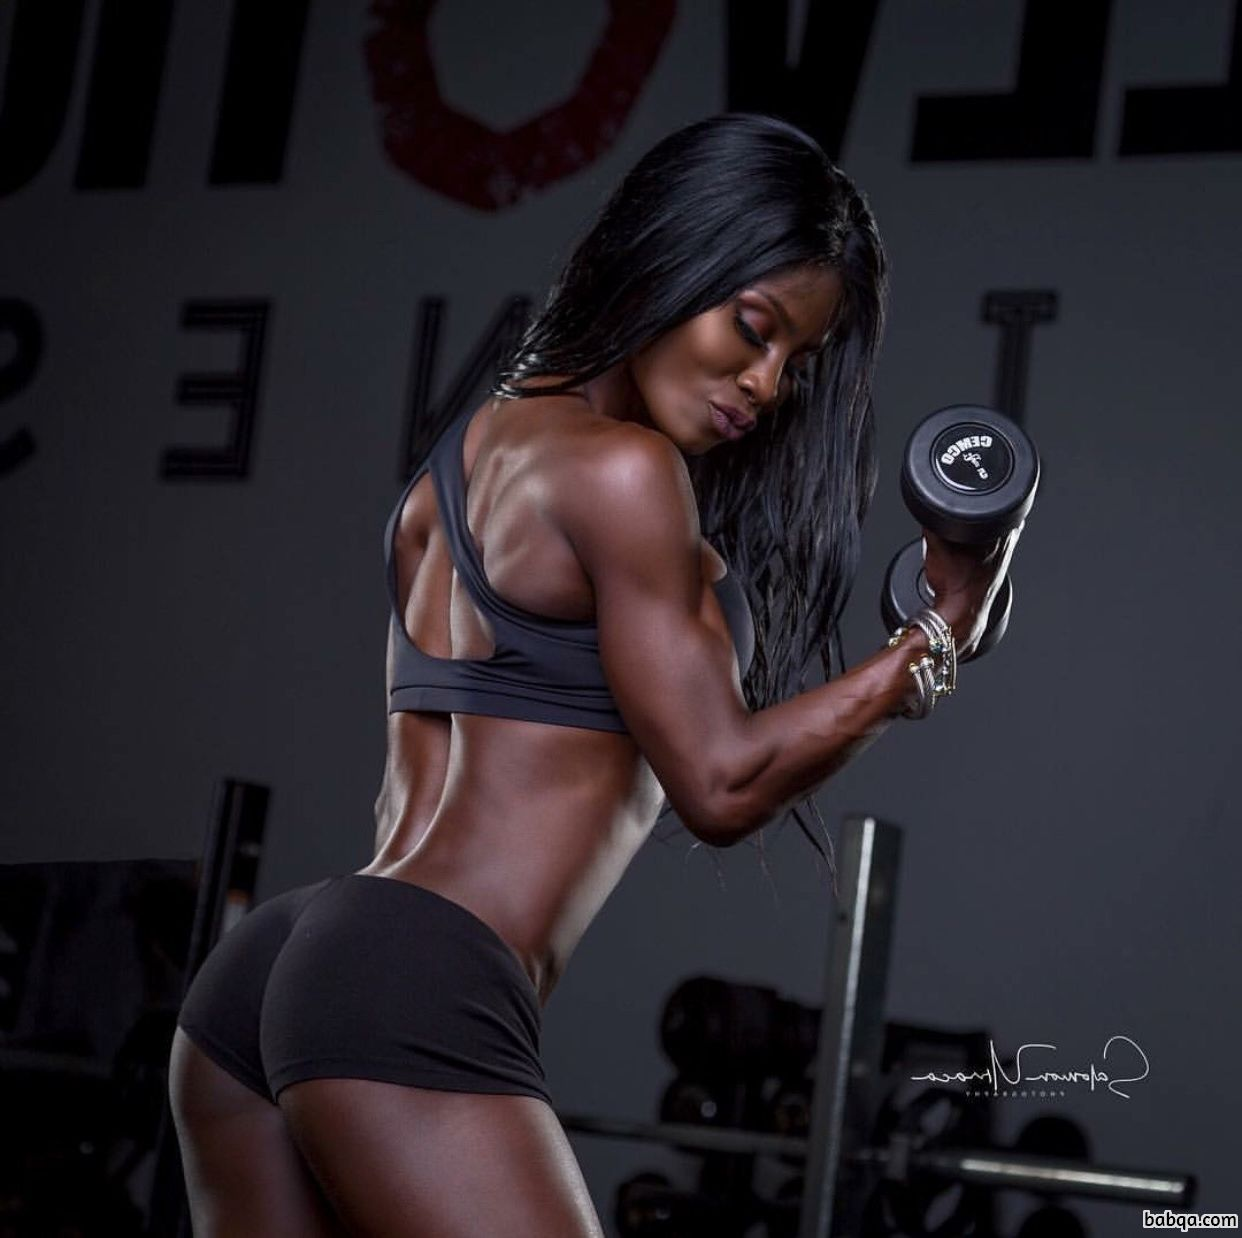 girl showing their ass repost from womenfitnessmodels – squats with weights for bum